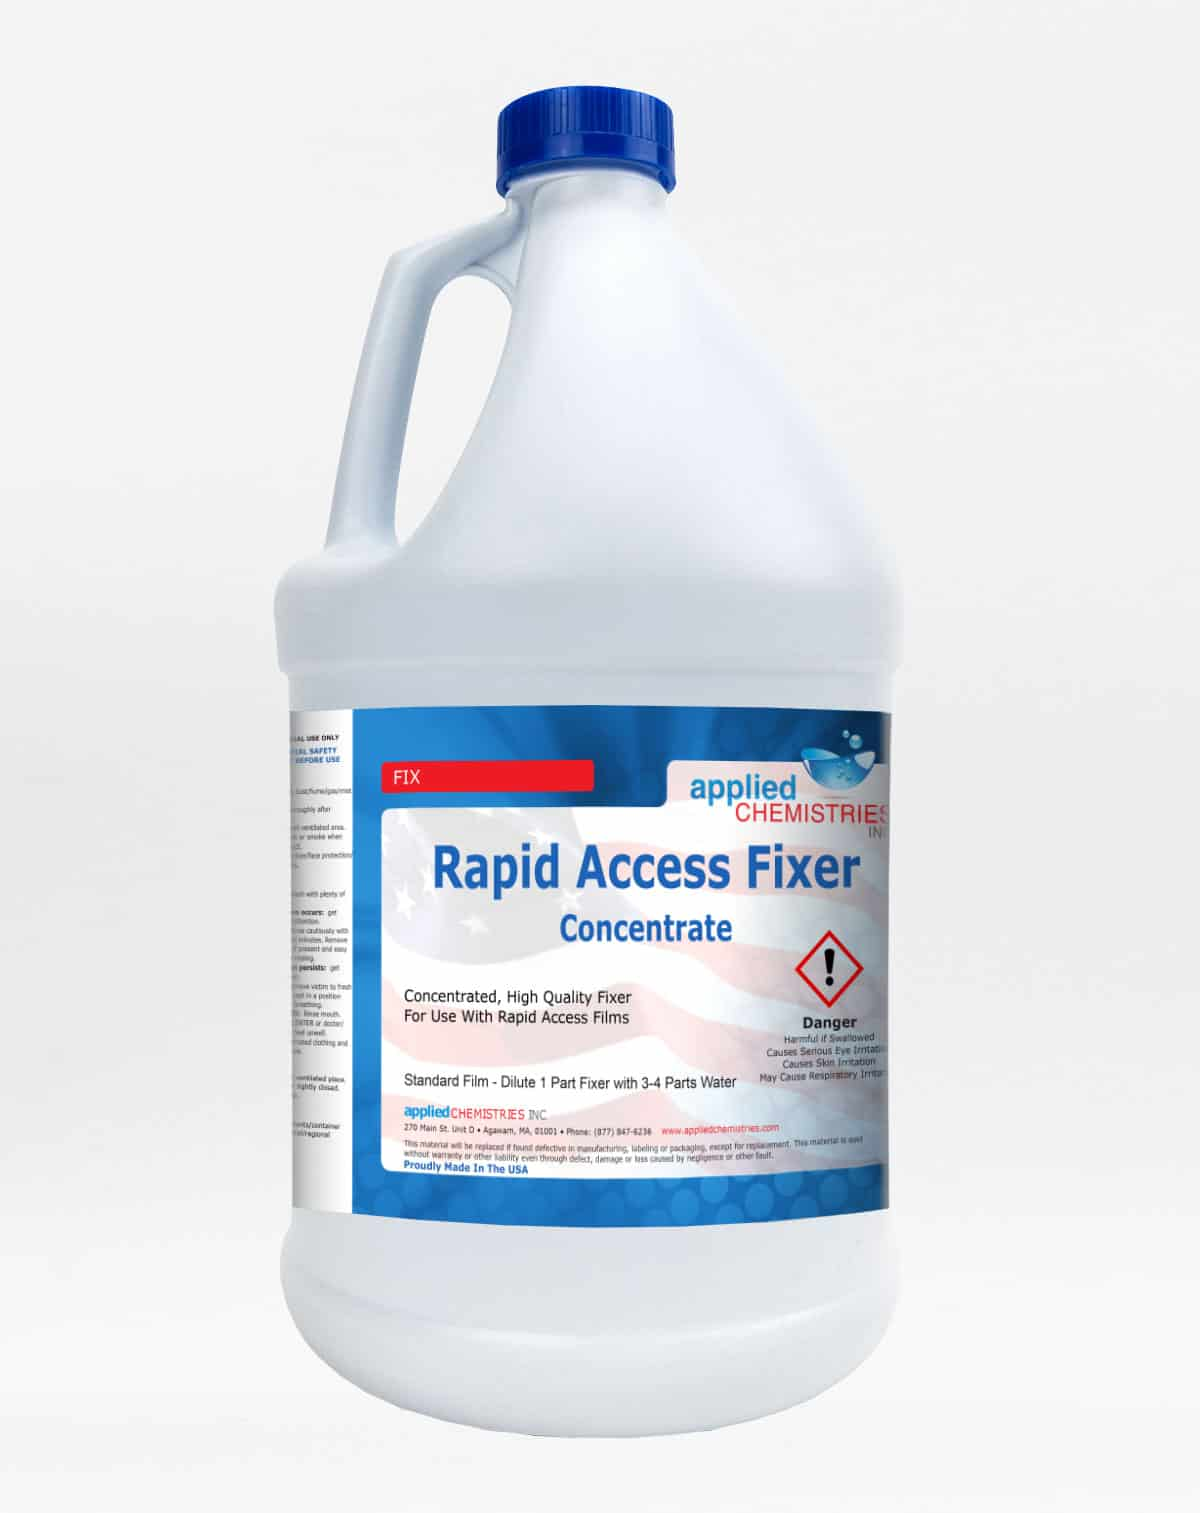 Rapid Access Fixer Concentrate